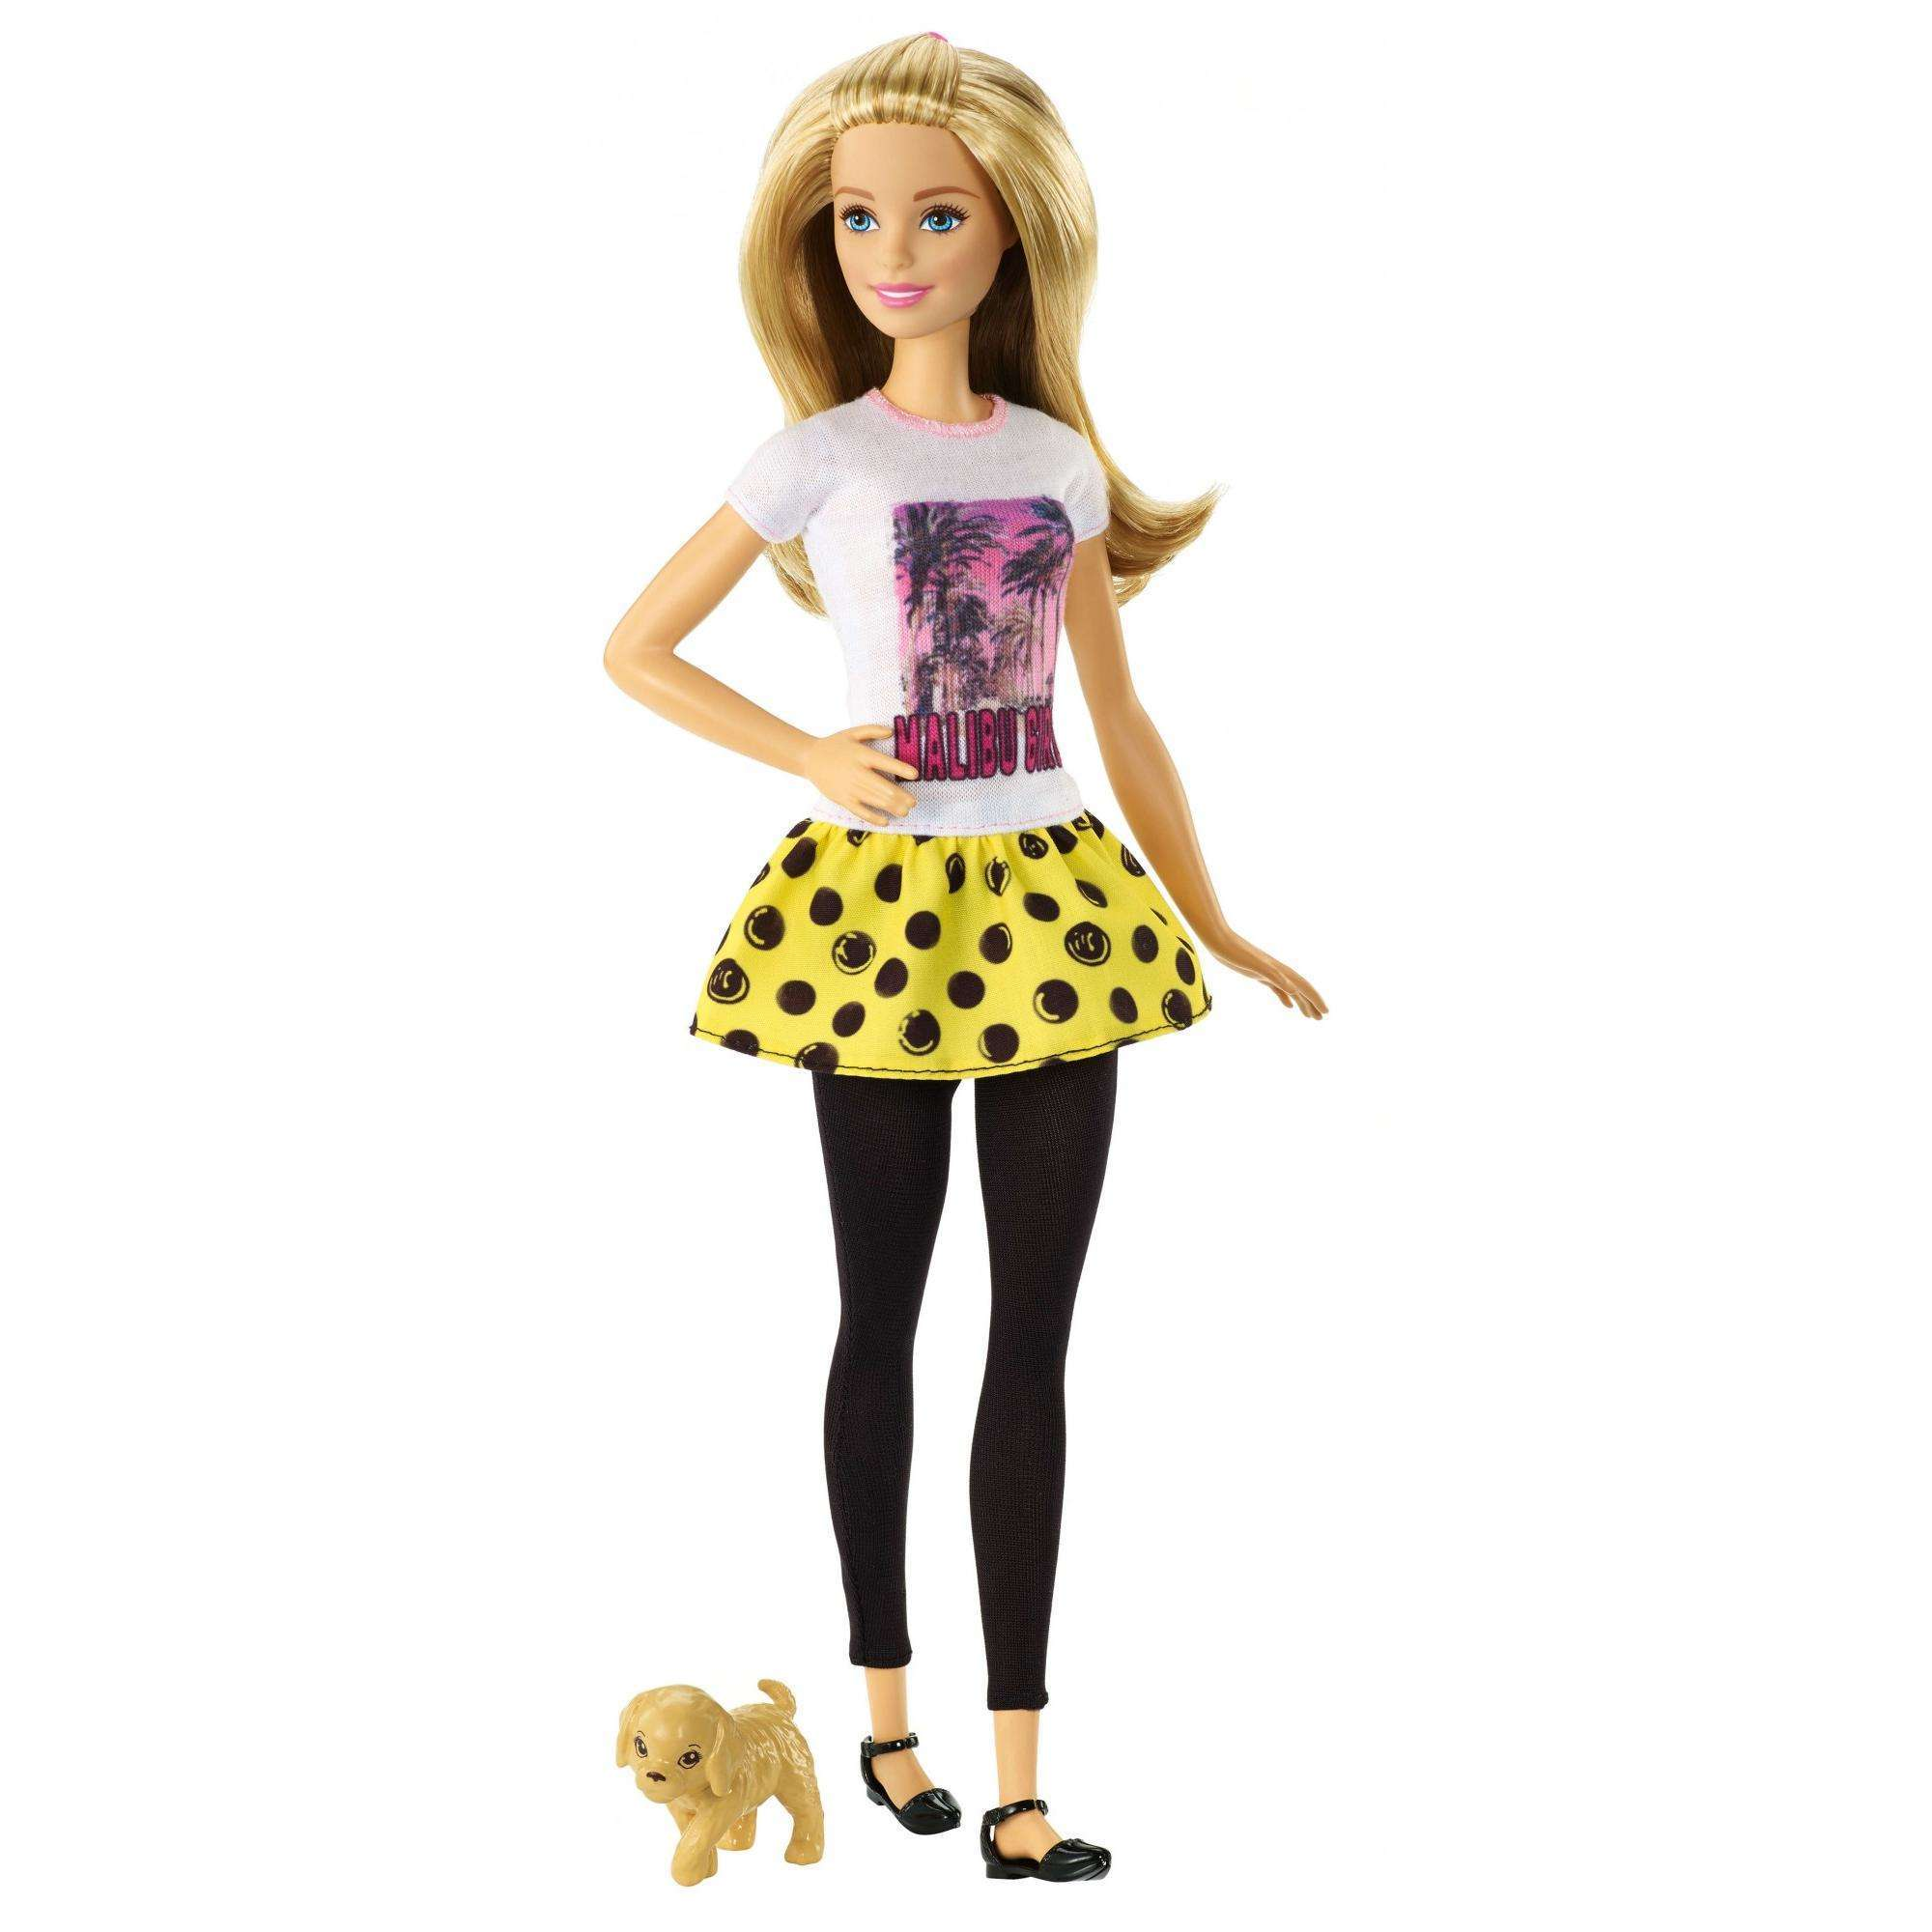 Barbie Great Puppy Adventure Barbie Doll by Mattel